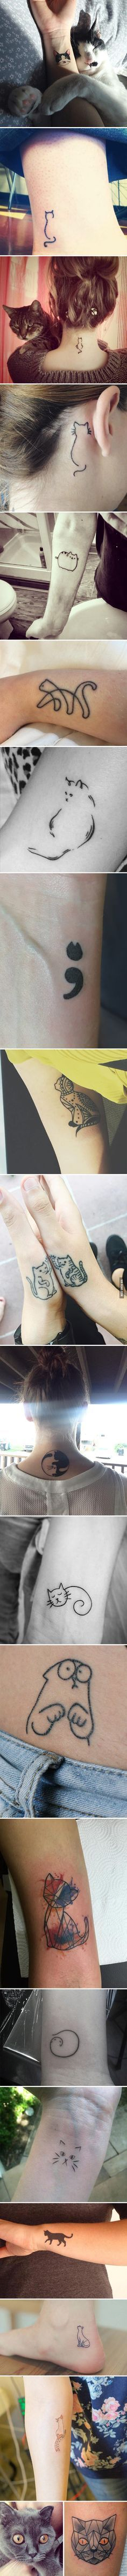 """20 Minimalistic """"Cattoos"""" For Cat Lovers. I'm not into tattoos, but these designs are really cute."""